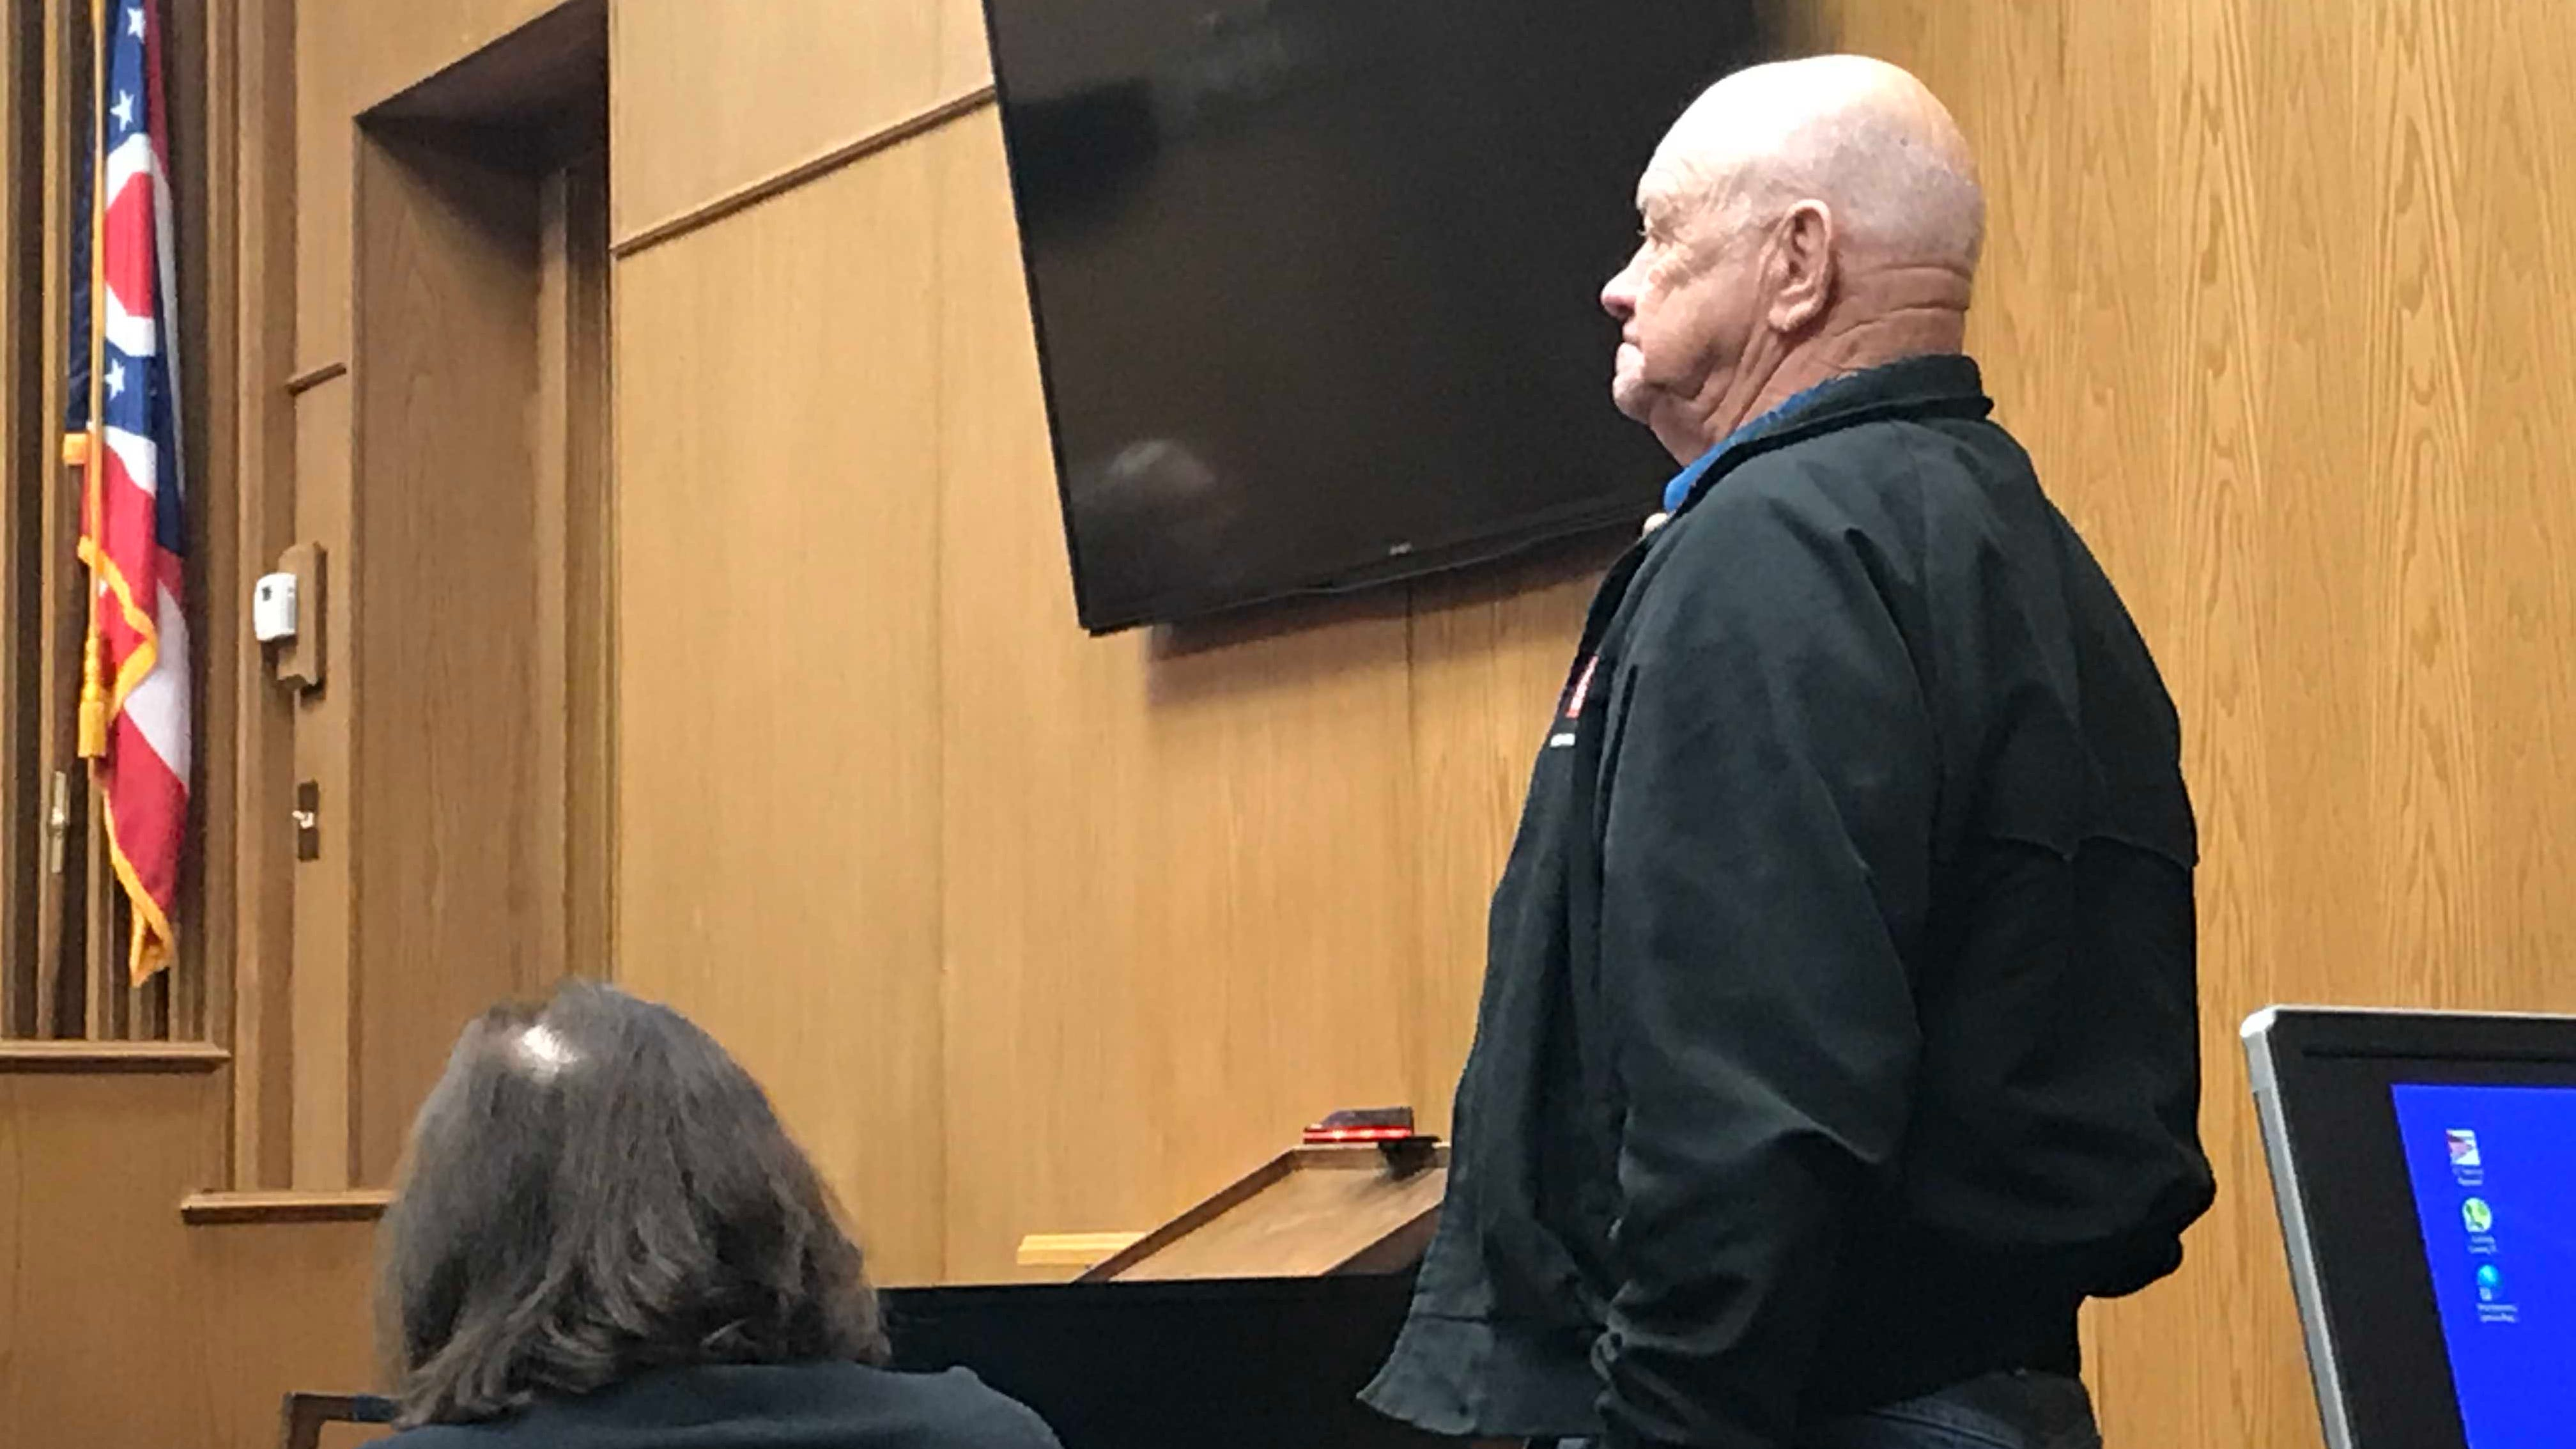 Father of Kirkersville shooter sentenced to probation in forgery case